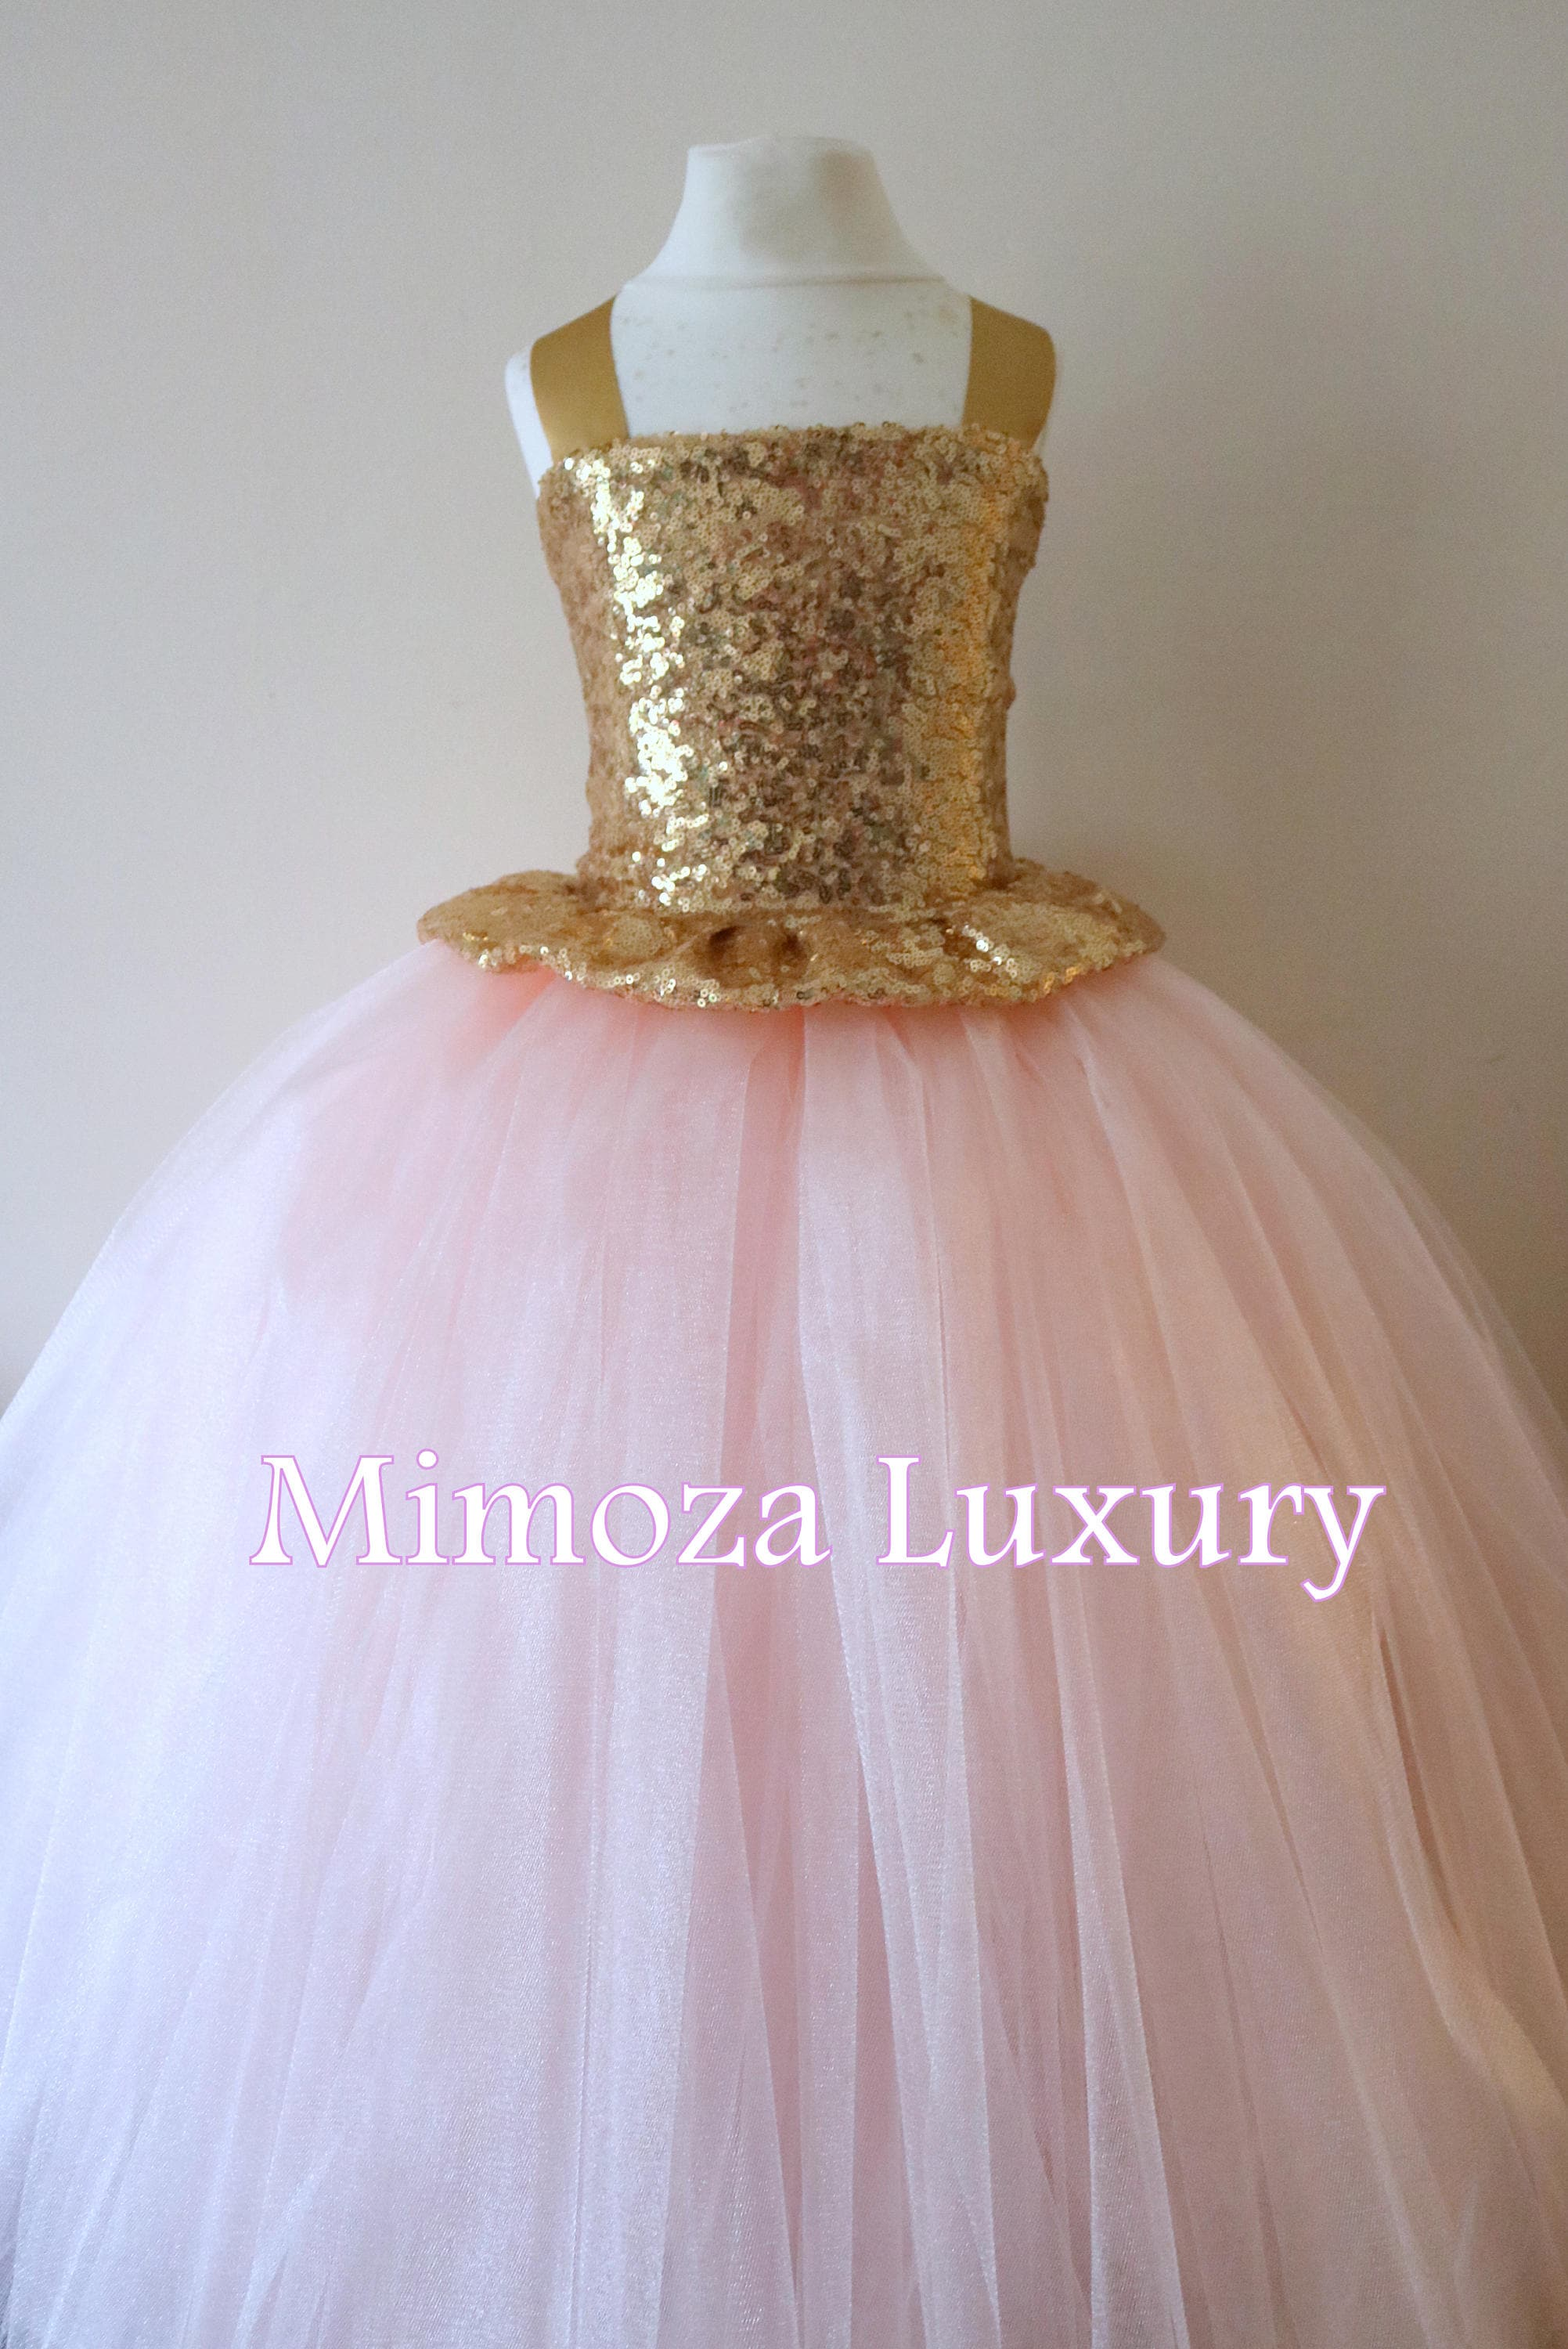 Gold blush flower girl dress gold bridesmaid dress couture gold blush flower girl dress gold bridesmaid dress couture flower girl gown bespoke girls dress tulle princess dress gold blush tutu ombrellifo Gallery